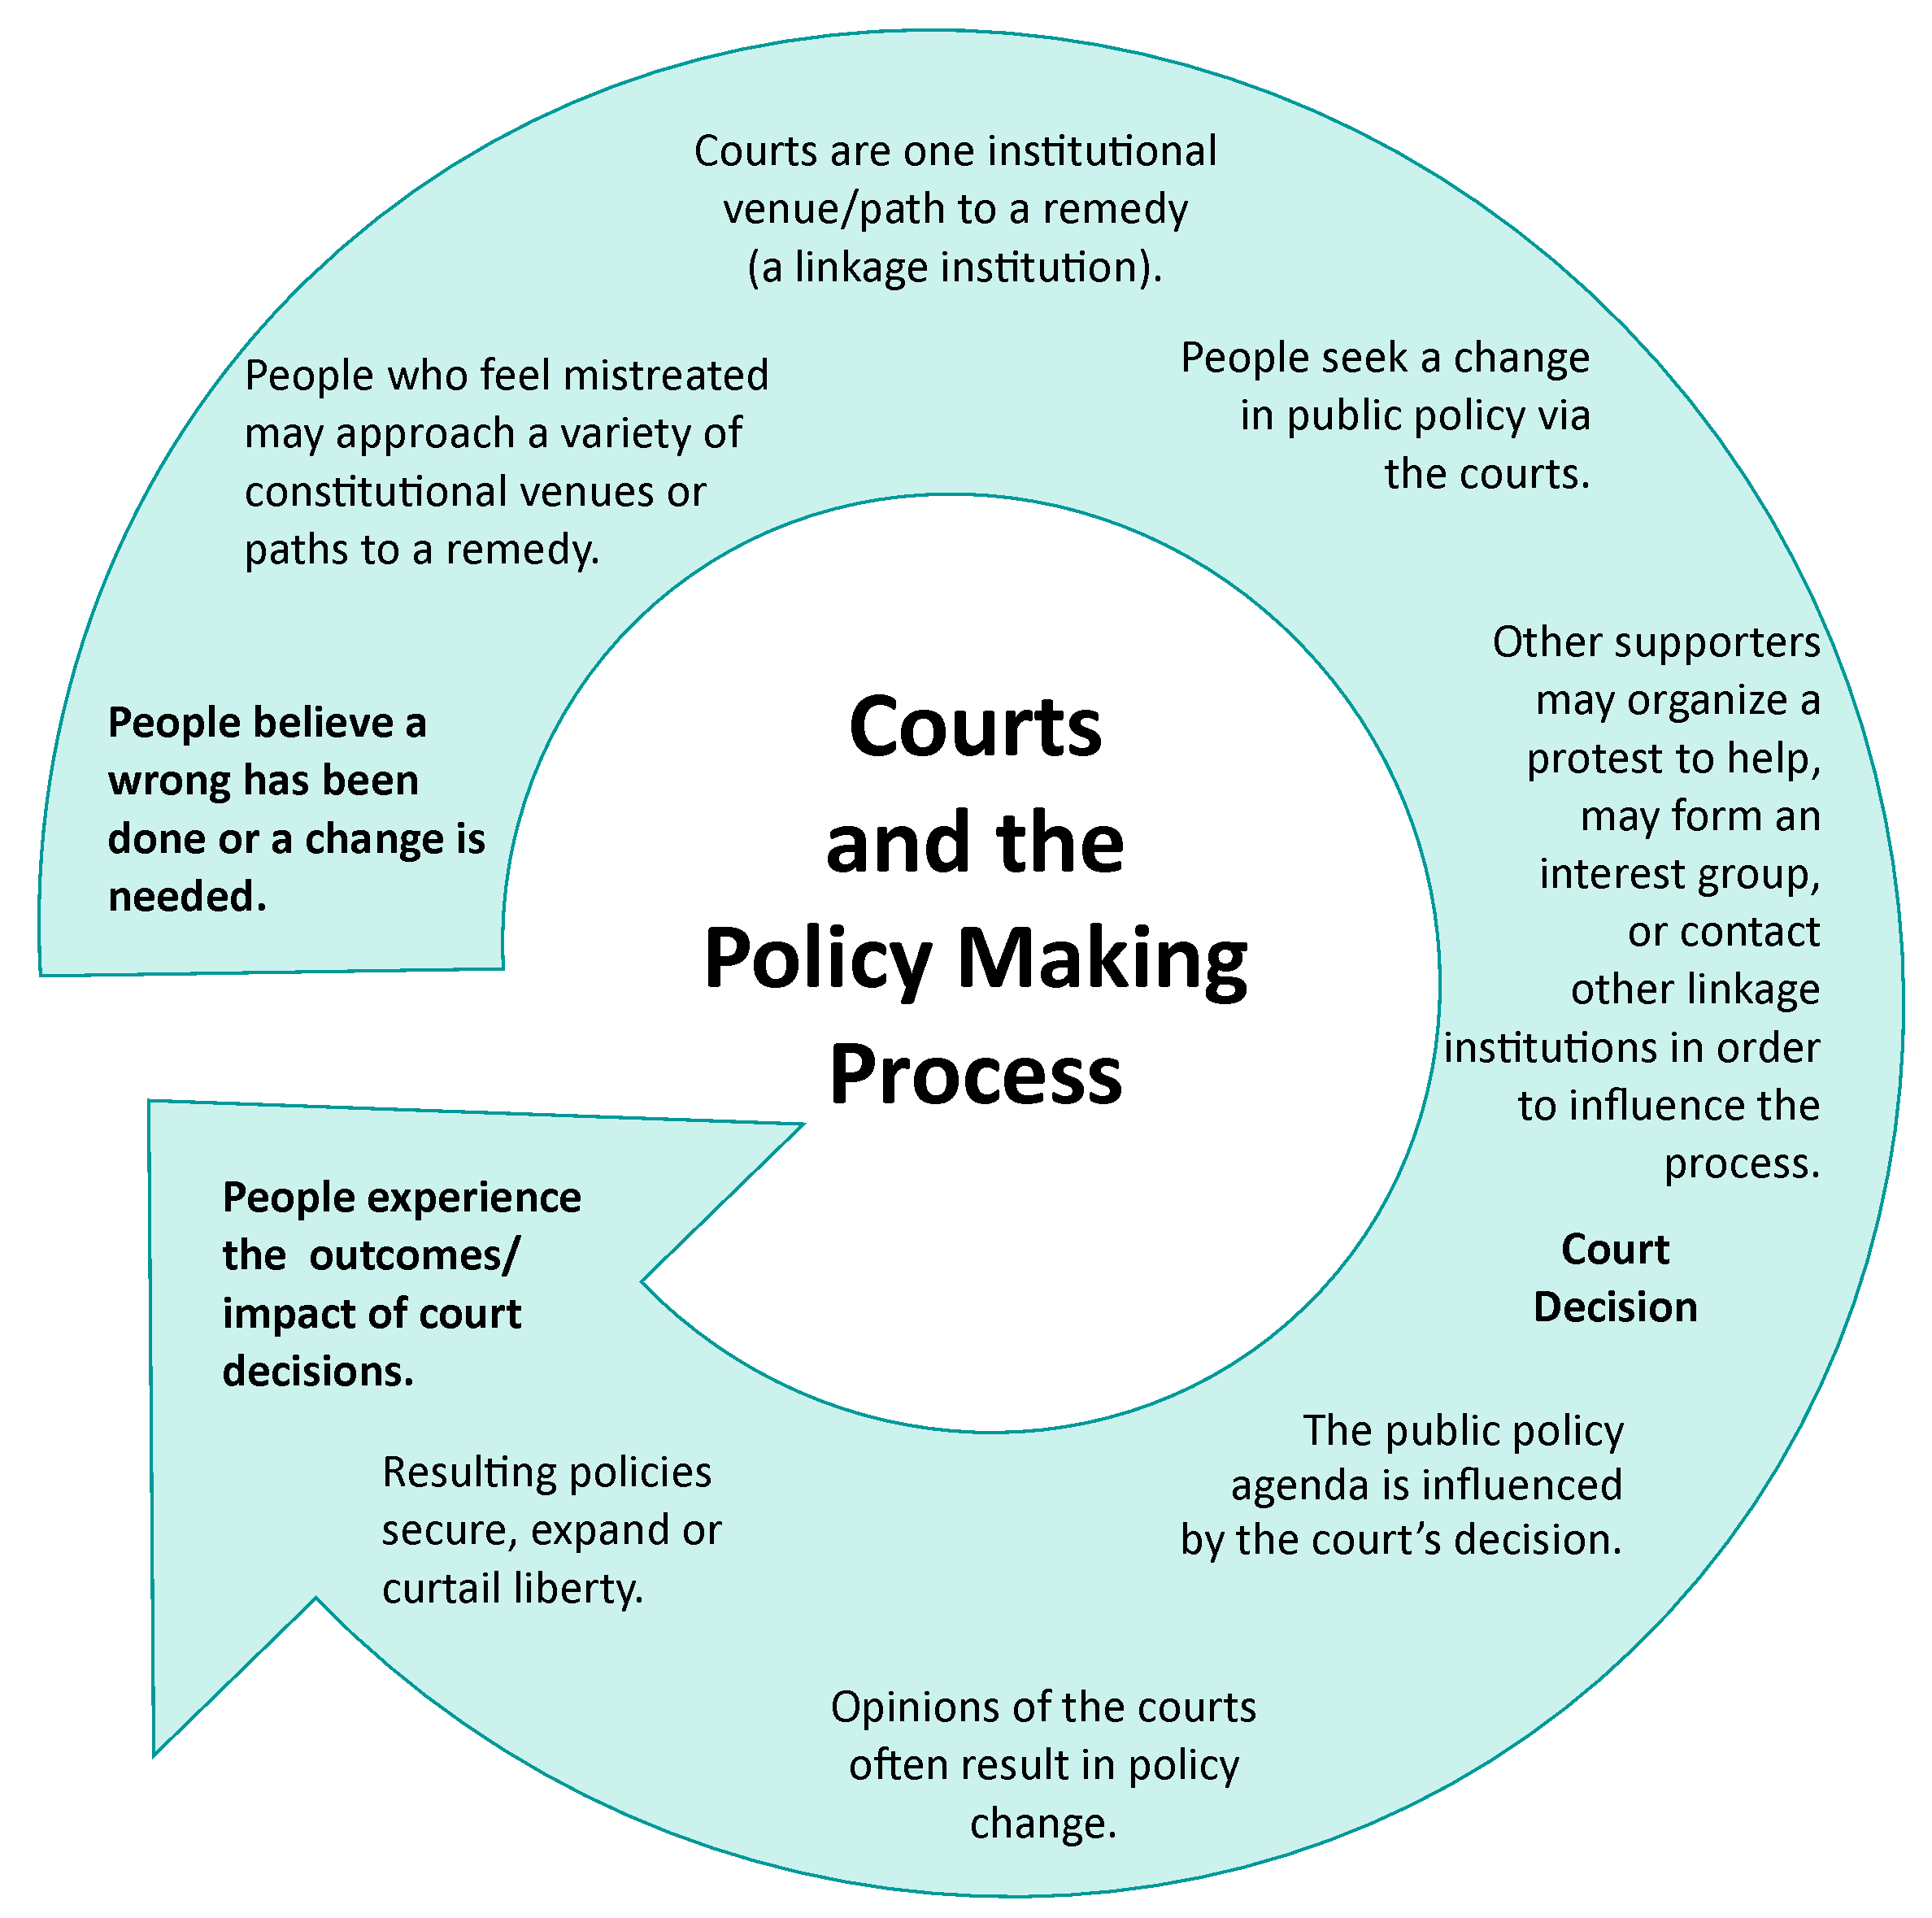 Chart illustrating how the courts are part of the policy making process and can help individuals who are not heard by other branches of government.